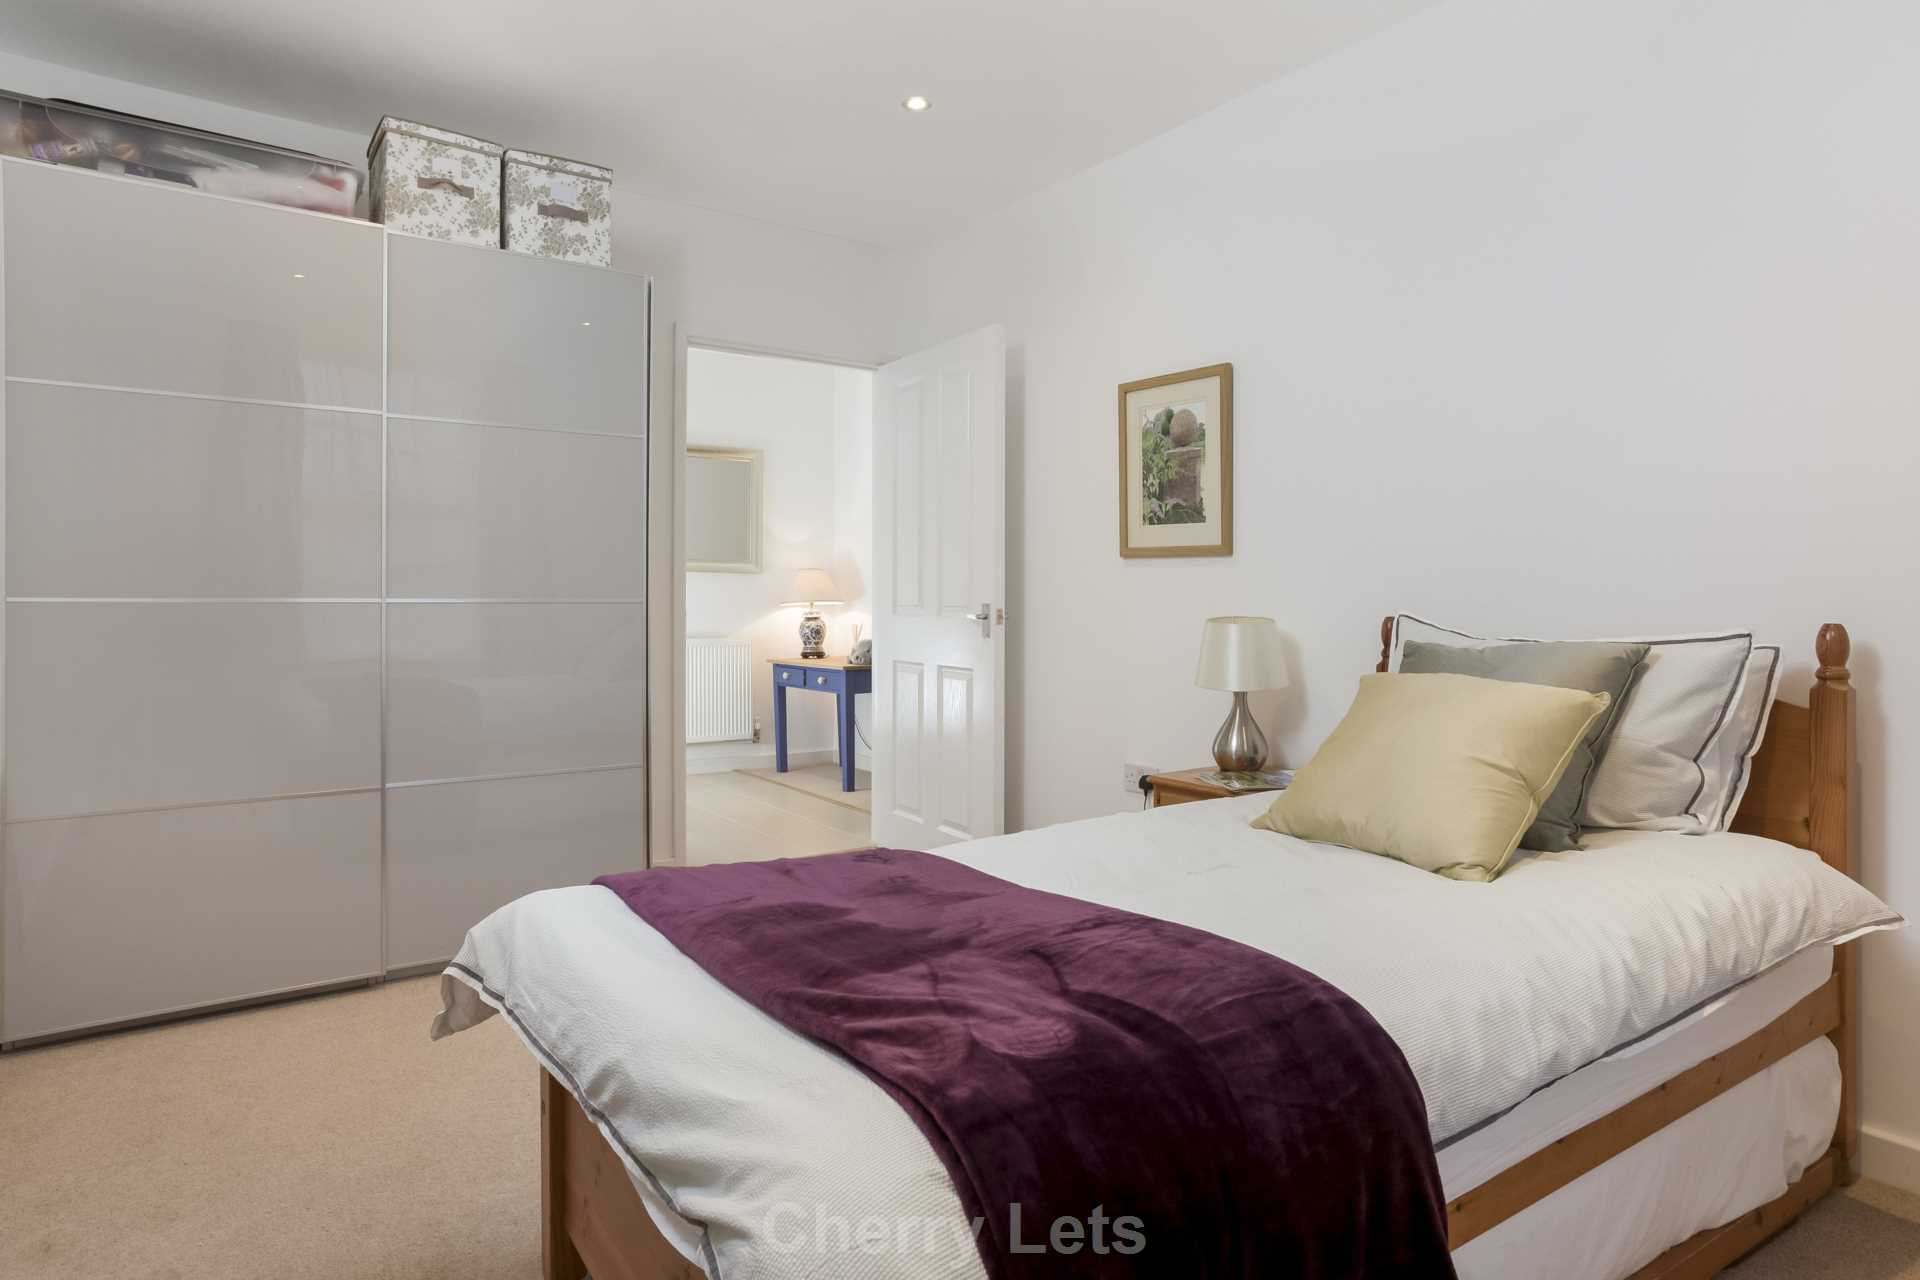 2 bed apartment to rent in Astrop Grange, Kings Sutton, OX17  - Property Image 10